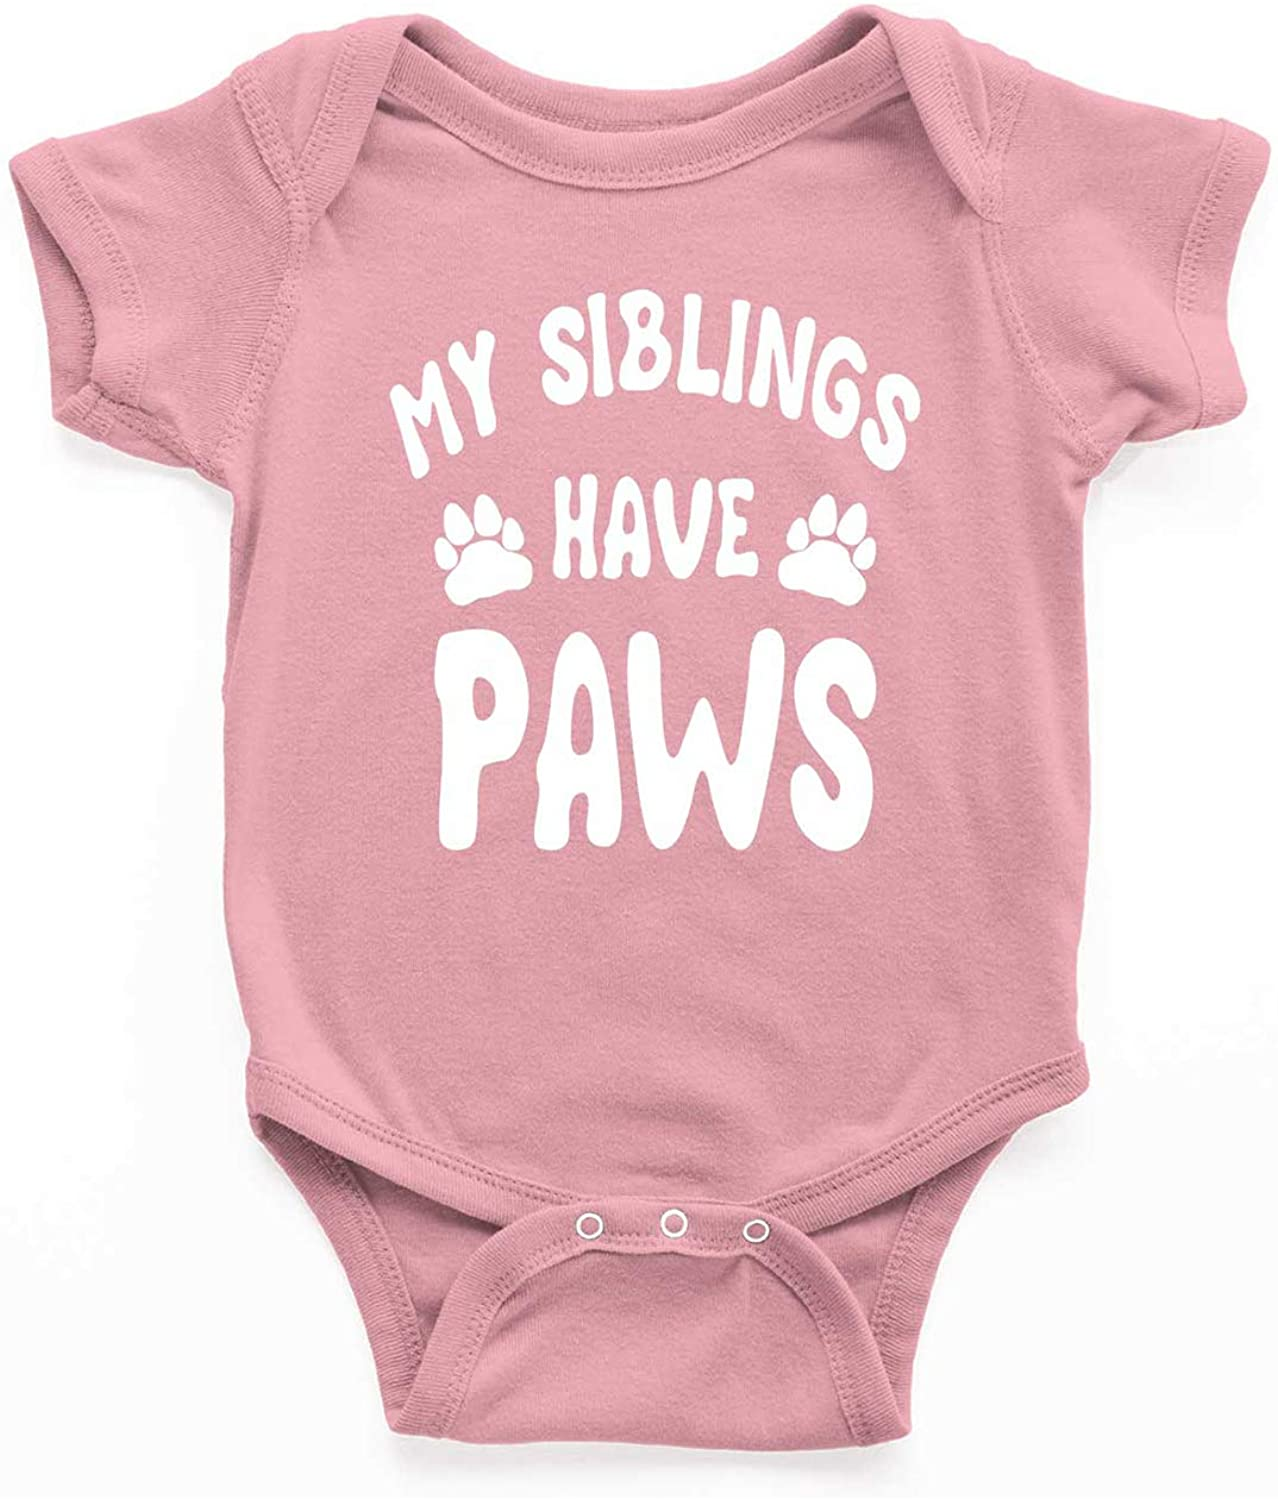 My Siblins Have Paws Novelty Cute Infant Baby Unisex One-Piece Bodysuit